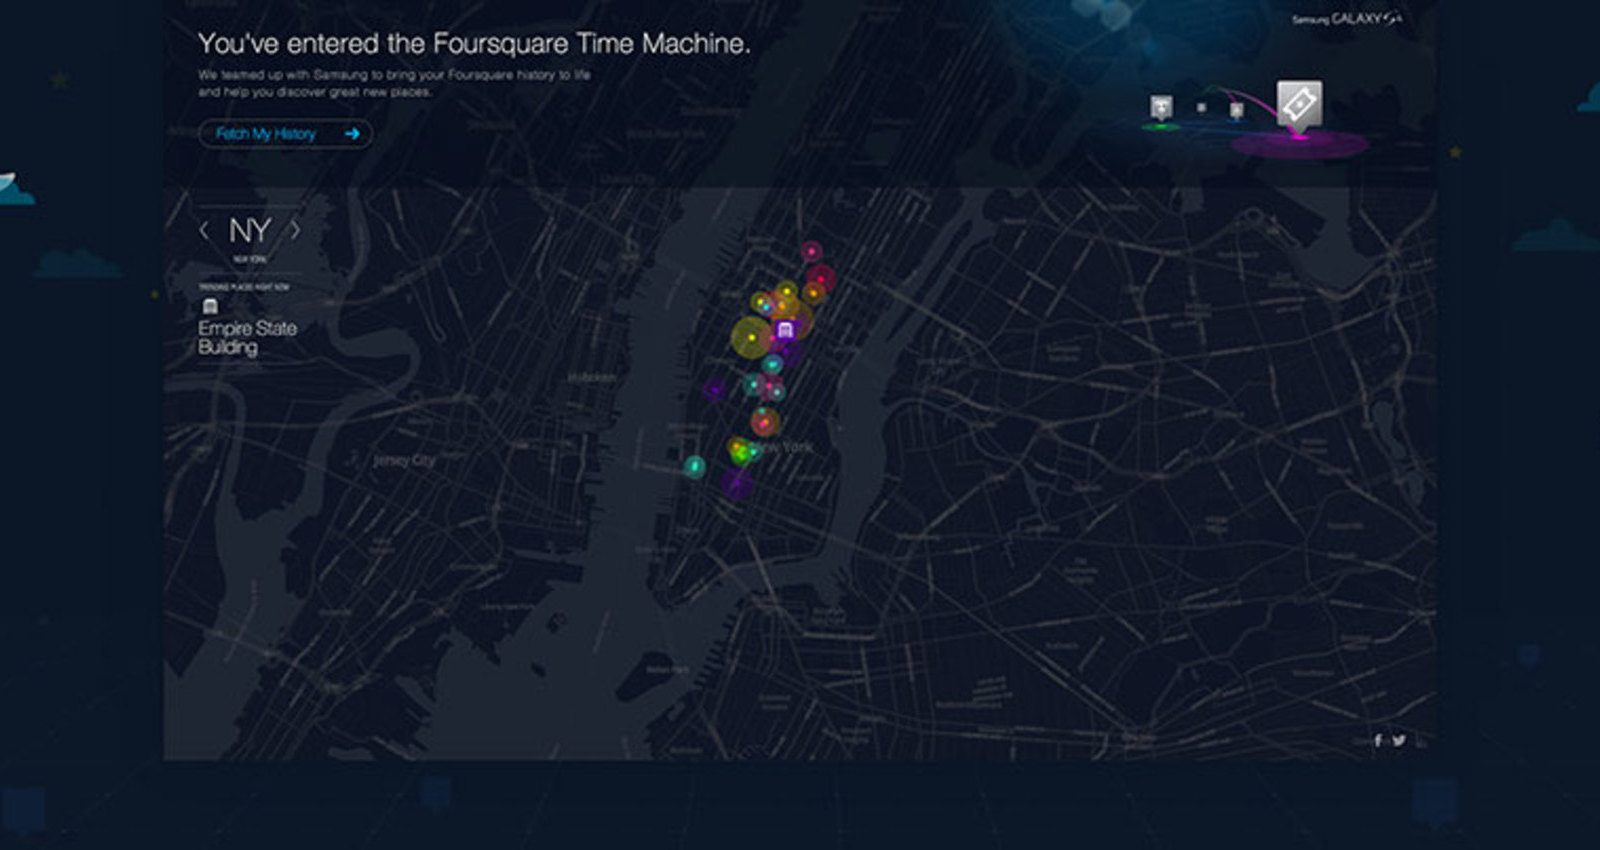 Foursquare Time Machine